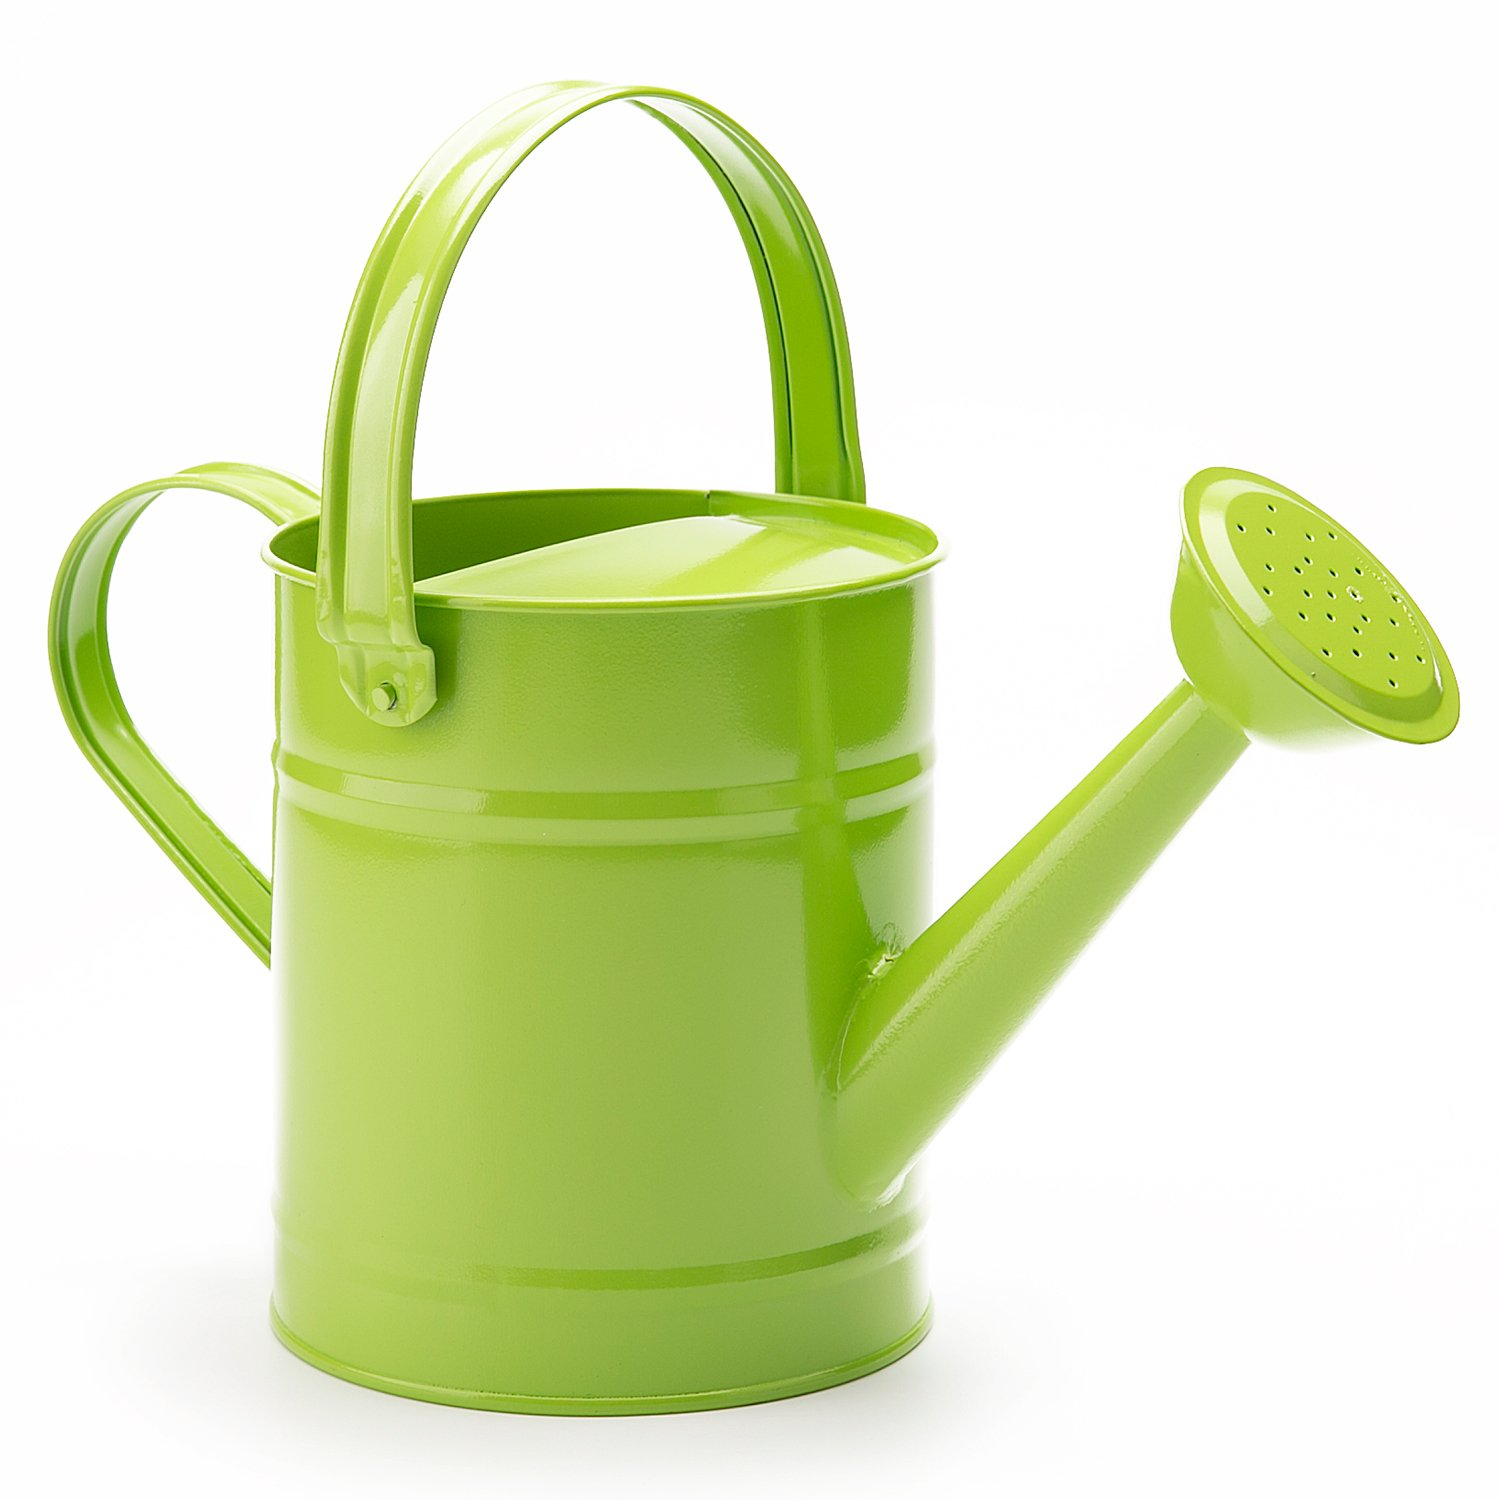 1.5 Letre Multi-color Metal Watering Can,Kids Children Garden Watering Bucket with Anti-rust Powder Coating Treatment and Beautiful Green Color